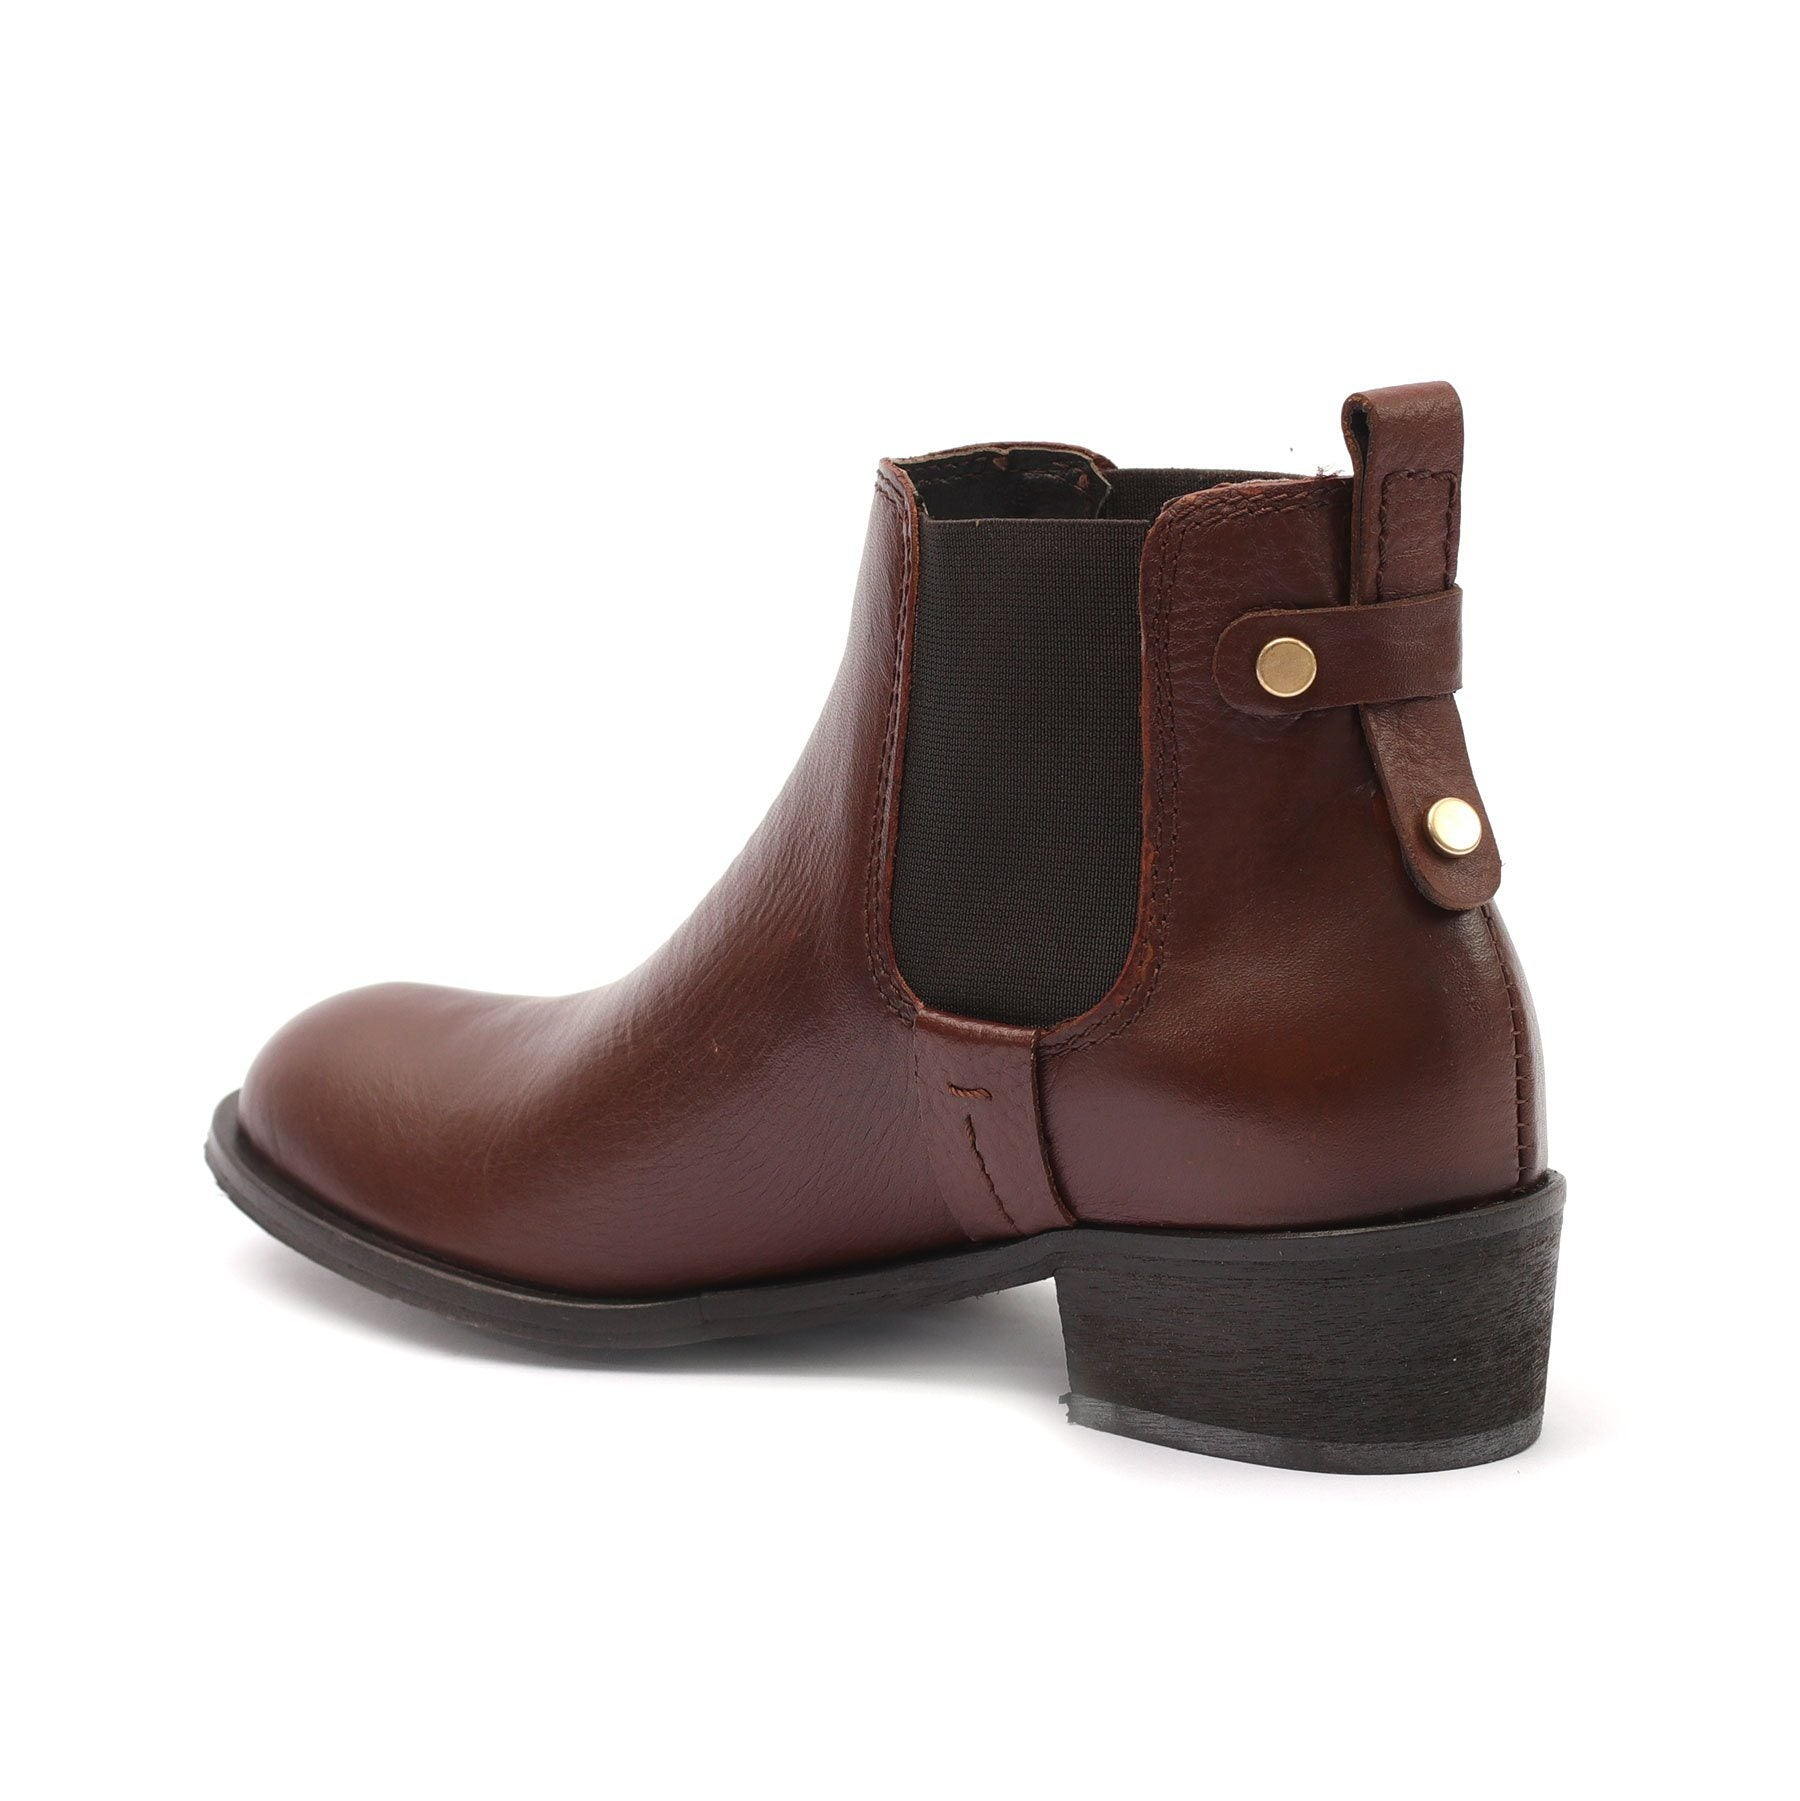 Botine piele naturala, dama - 340 maro  box - Clasicor Outlet